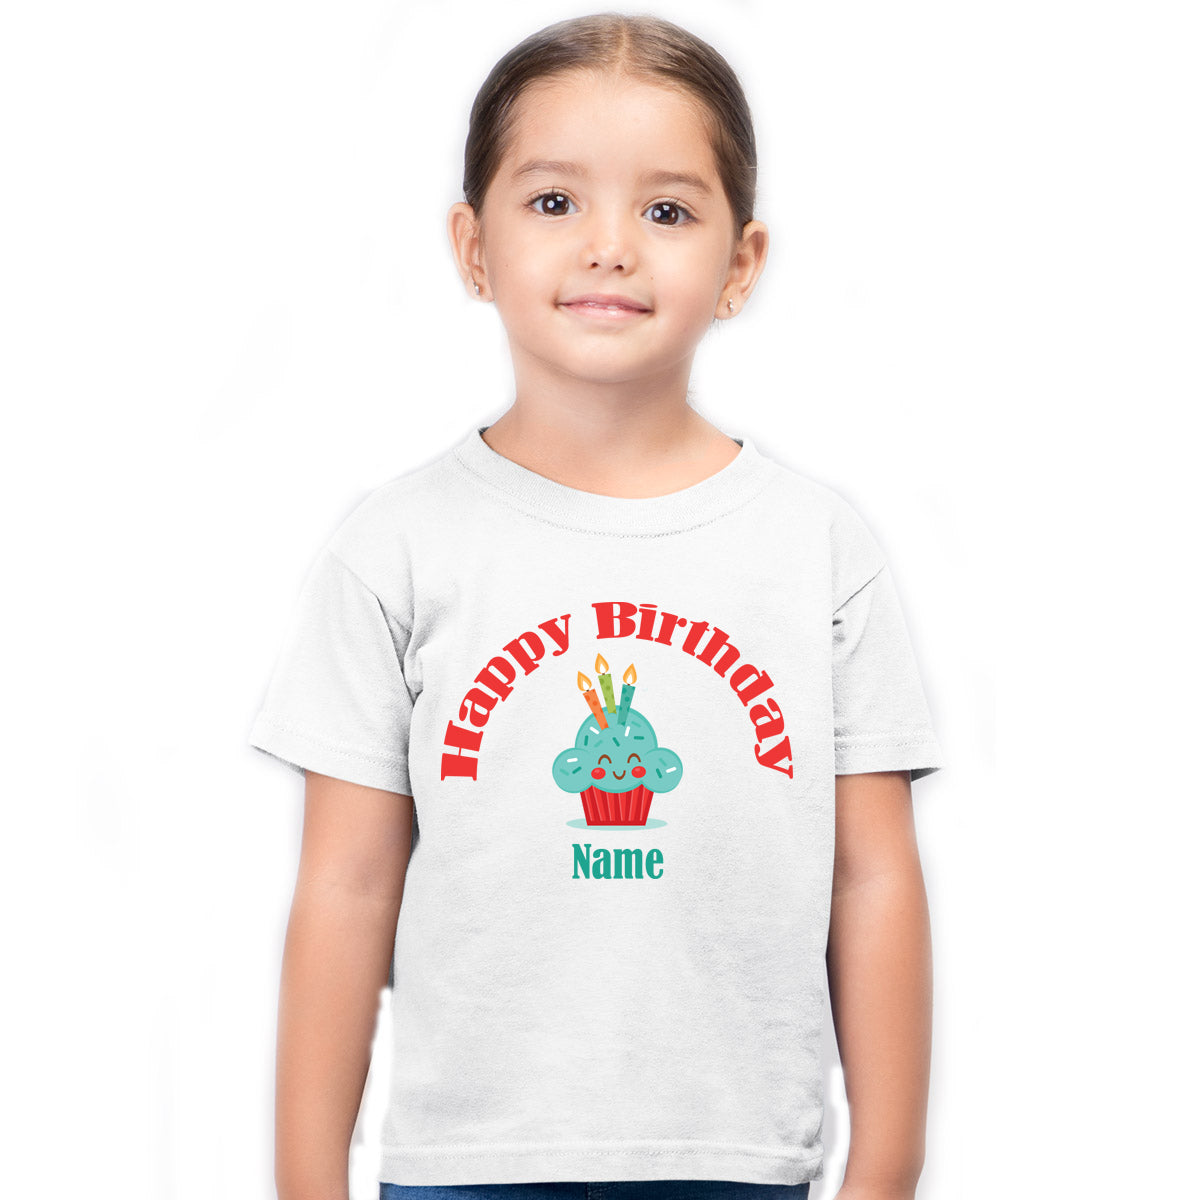 Sprinklecart Happy Birthday Printed Personalized Cup Cake Poly-Cotton T Shirt for Kids (White)